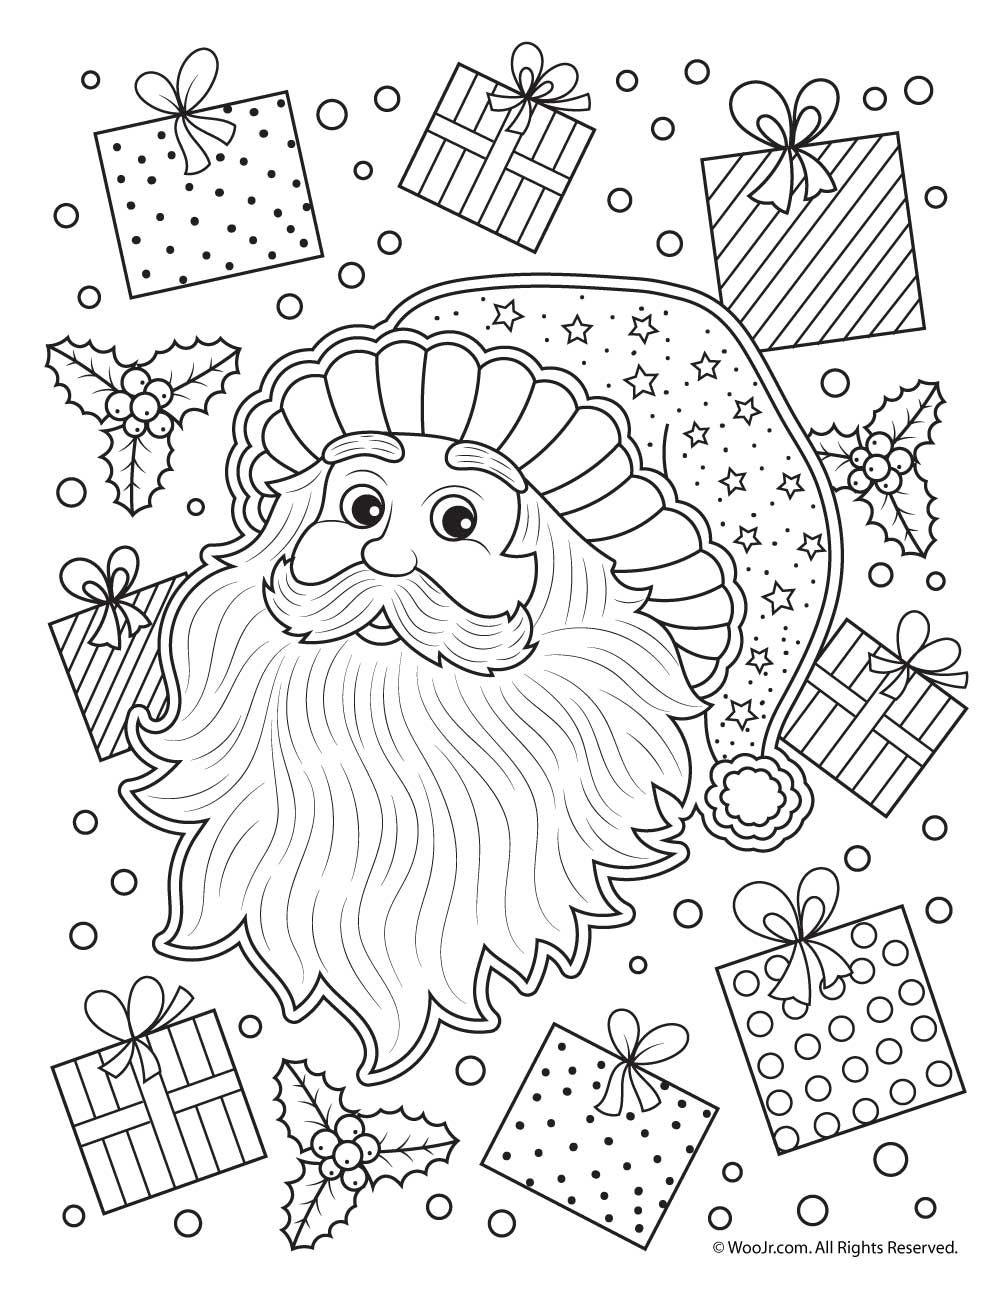 Santa claus adult coloring pages